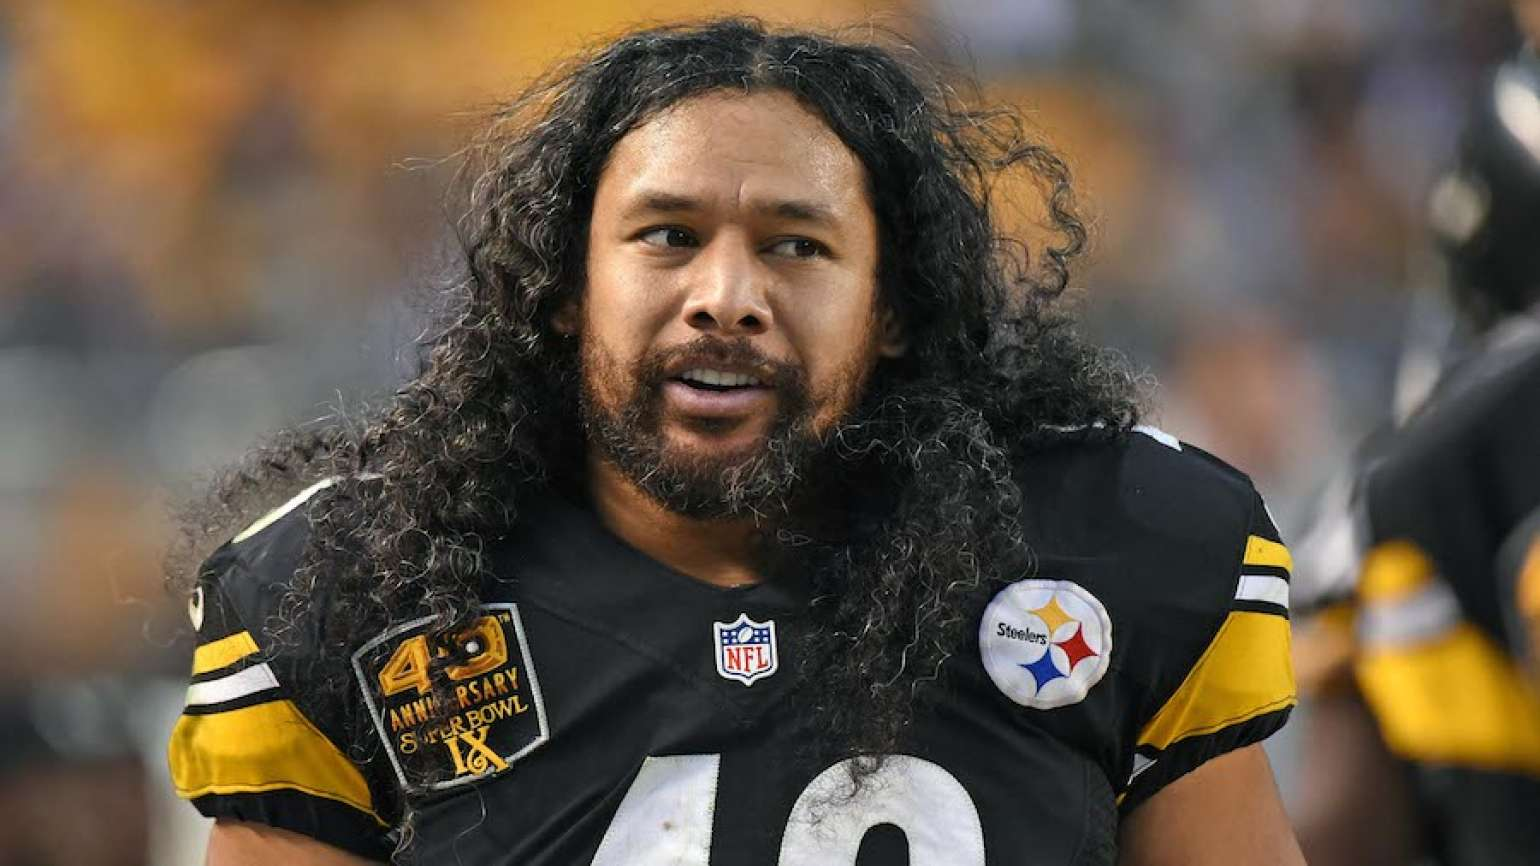 Pittsburgh Steelers safety Troy Polamalu. Photo: Getty Images.